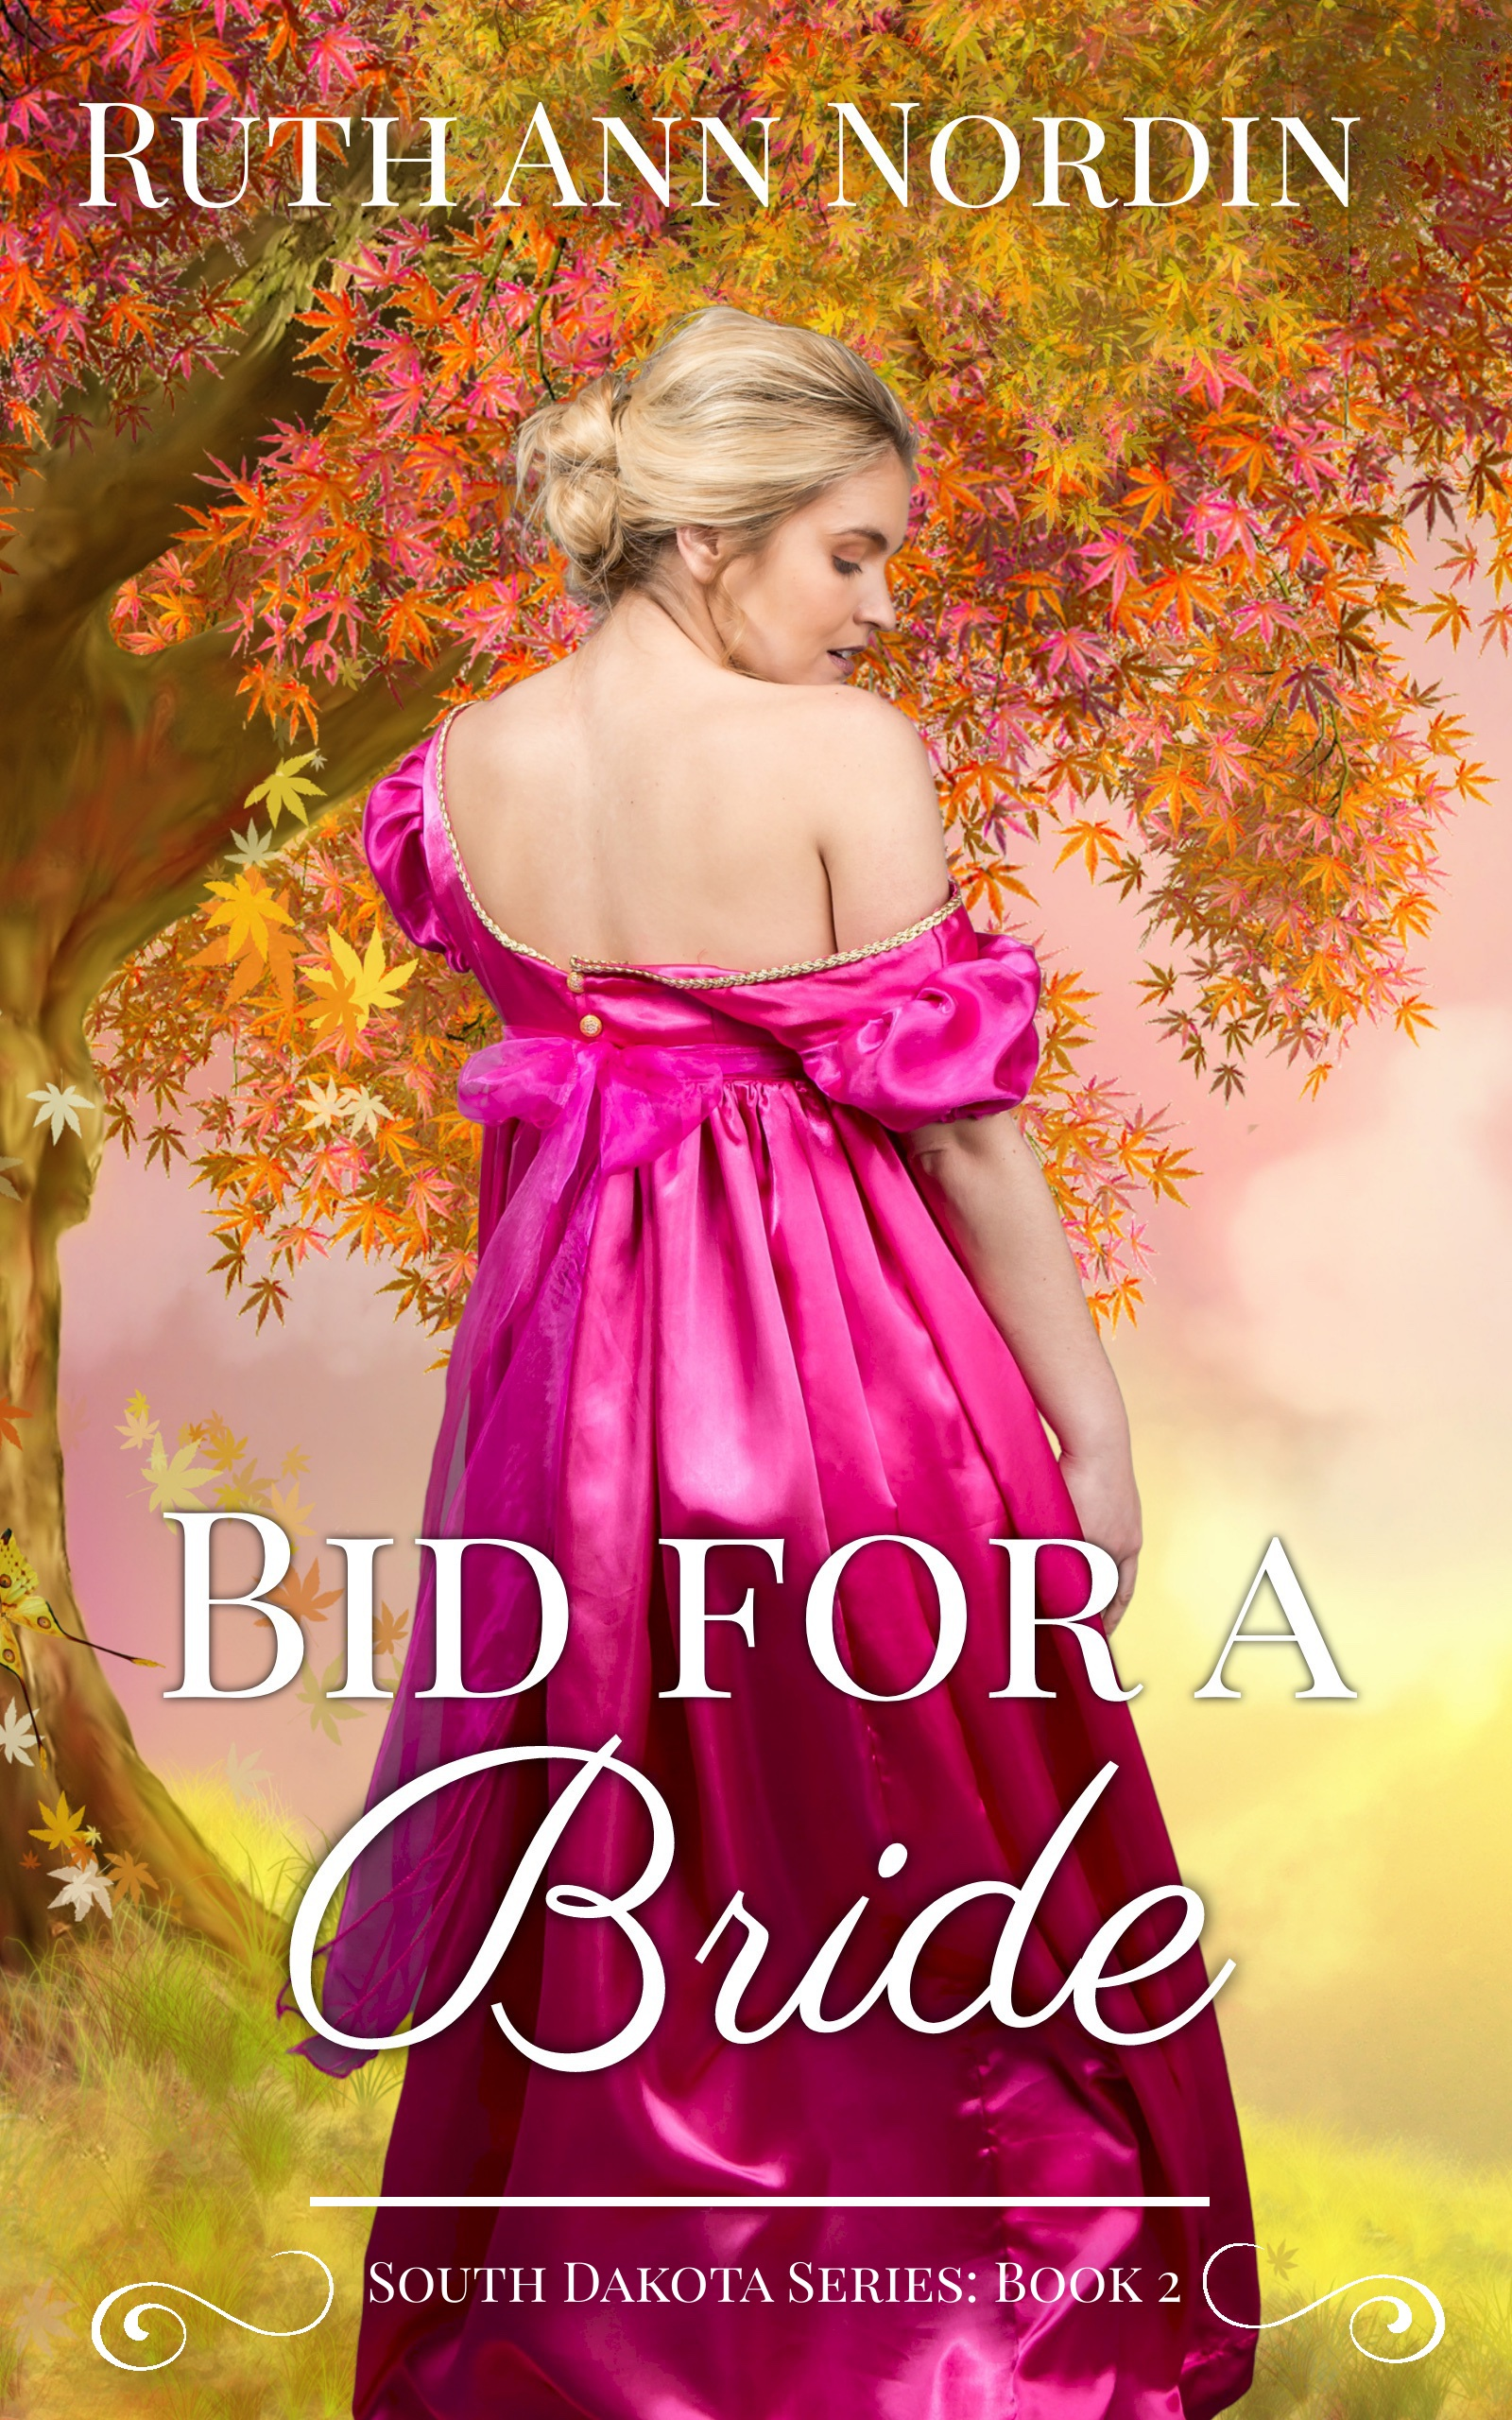 Bid for a Bride new ebook cover